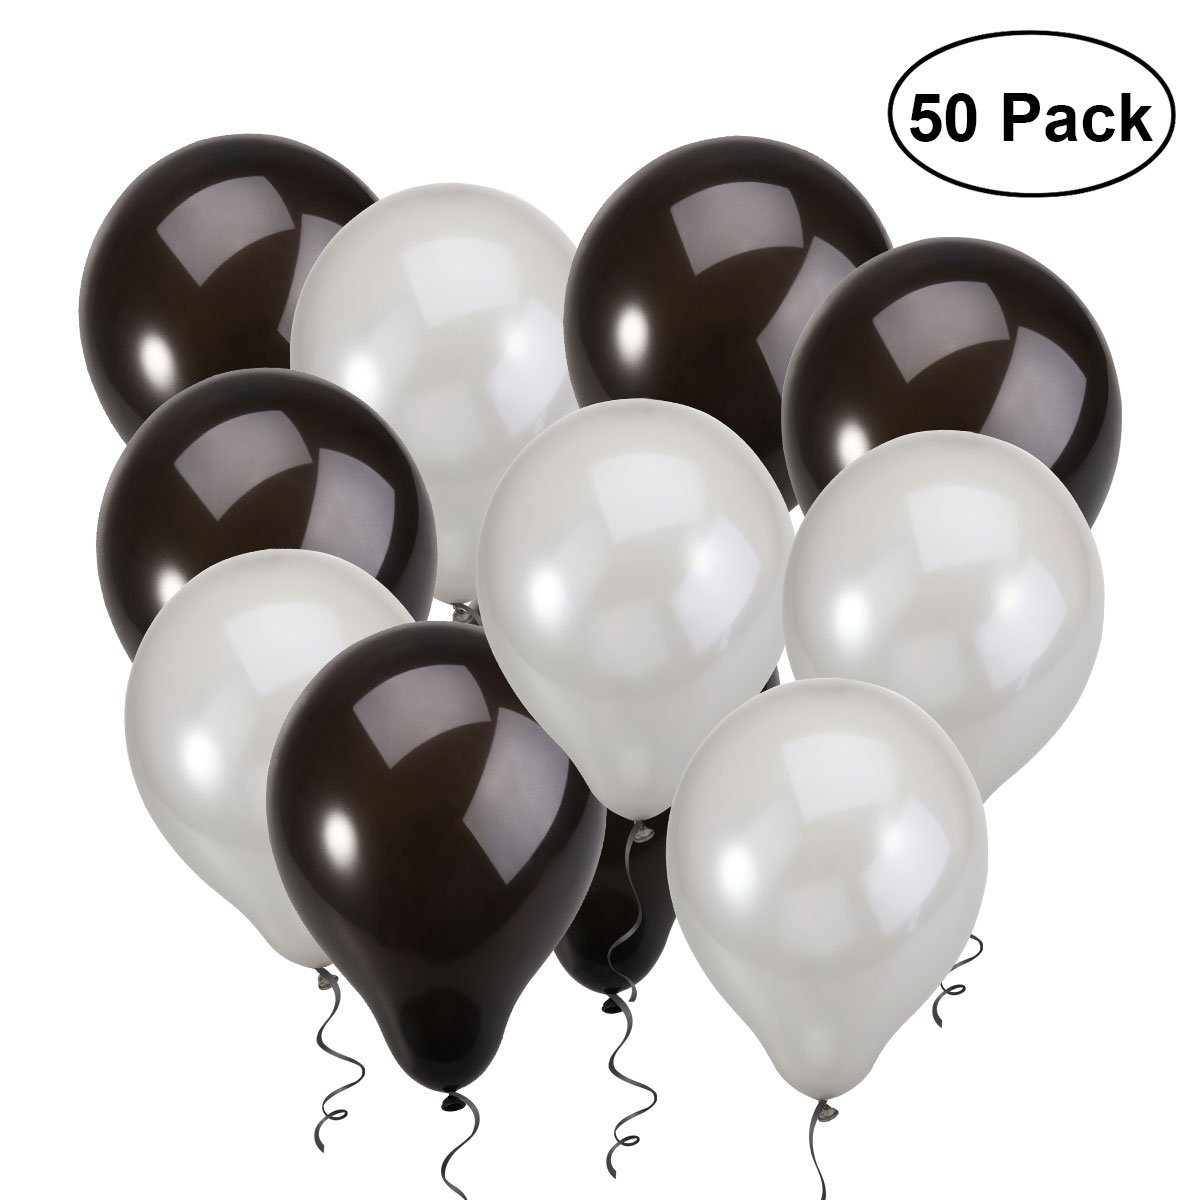 NUOLUX Latex Balloons,12 inch Black Silver Balloons for Wedding Birthday Party,50pcs